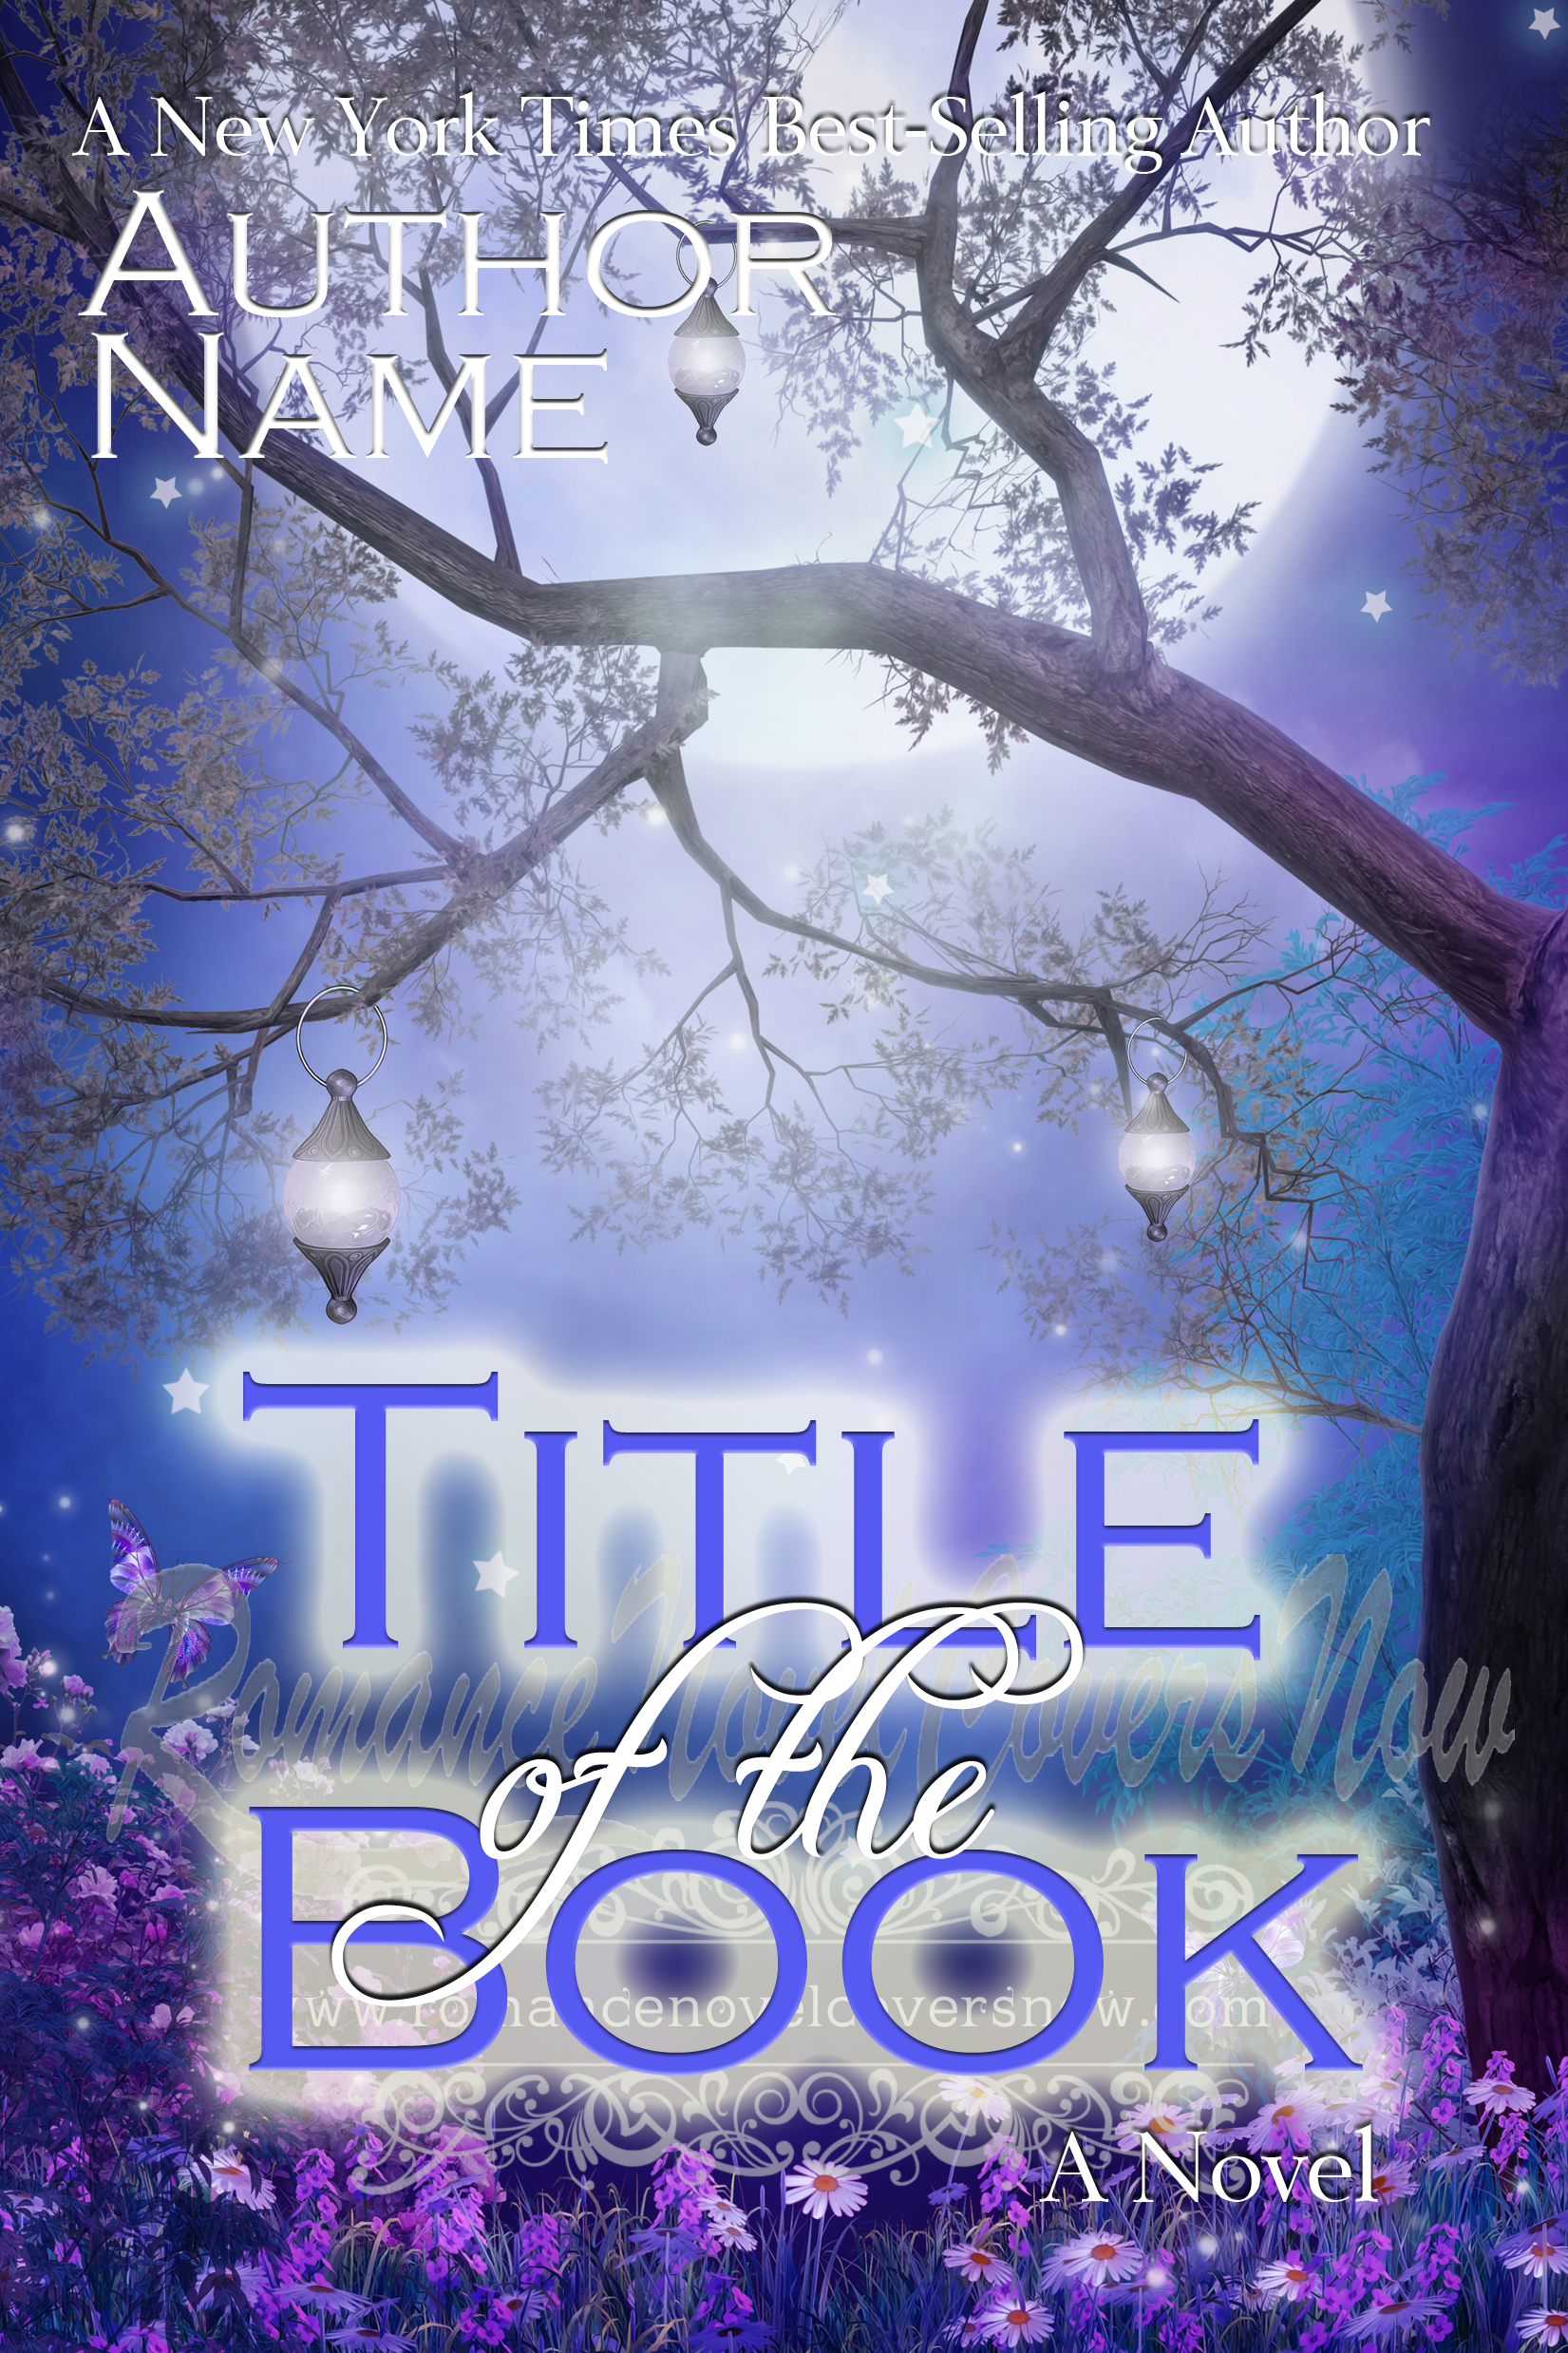 Romance Book Cover Remix : Paranormal and historical romance novel covers now